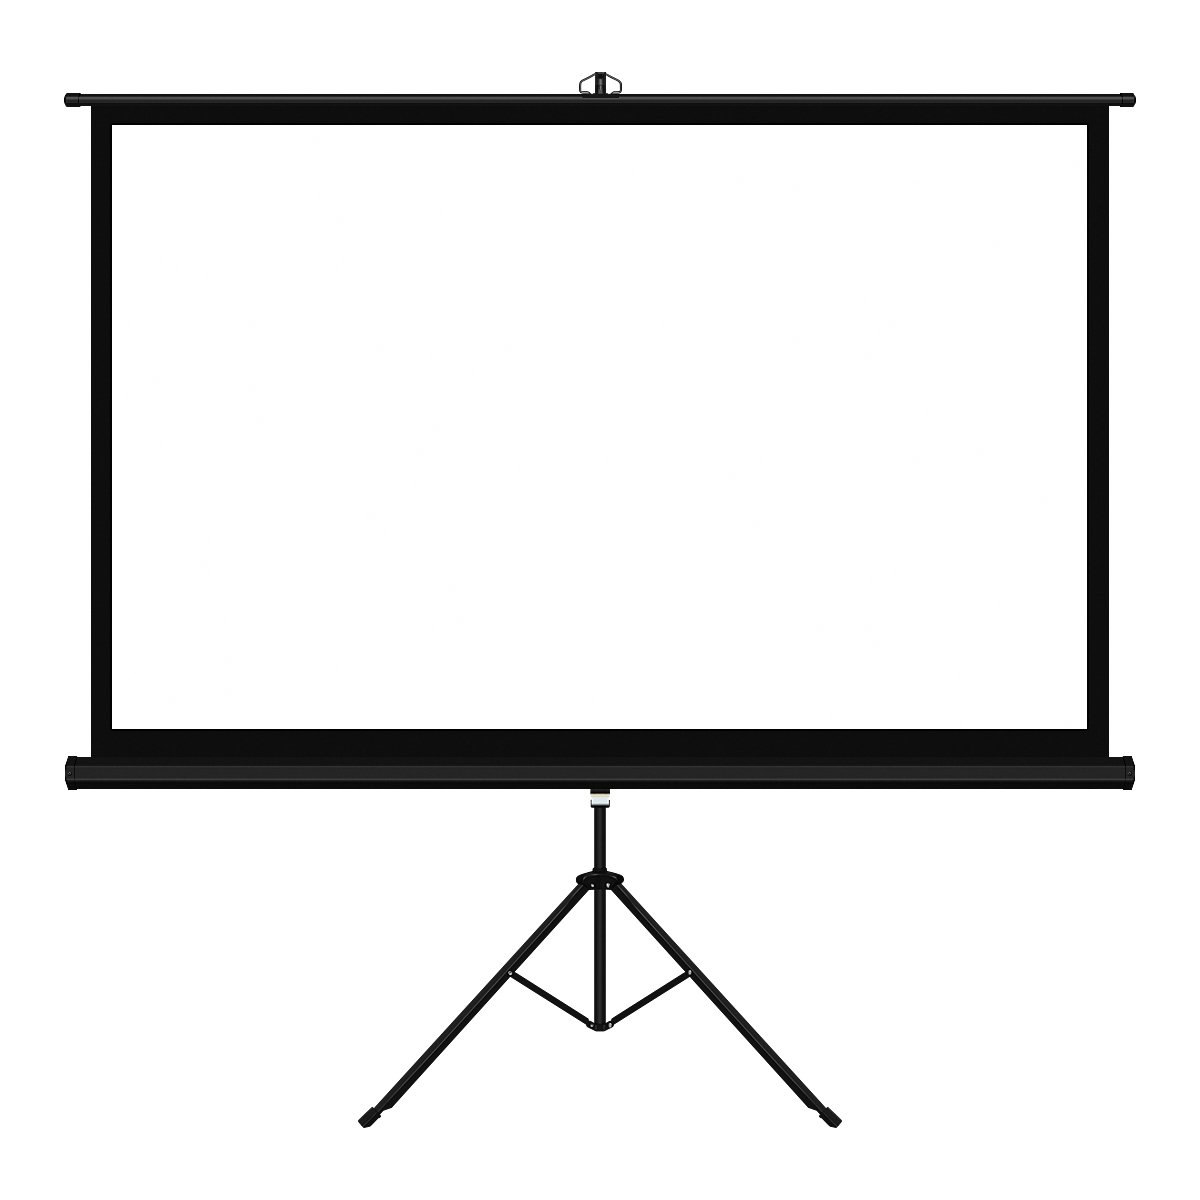 100 Inch 16:9 Movie Screen FastFox Outdoor Portable Home Cinema Projector Screens with Tripod Stand PVC Fabric Matte White